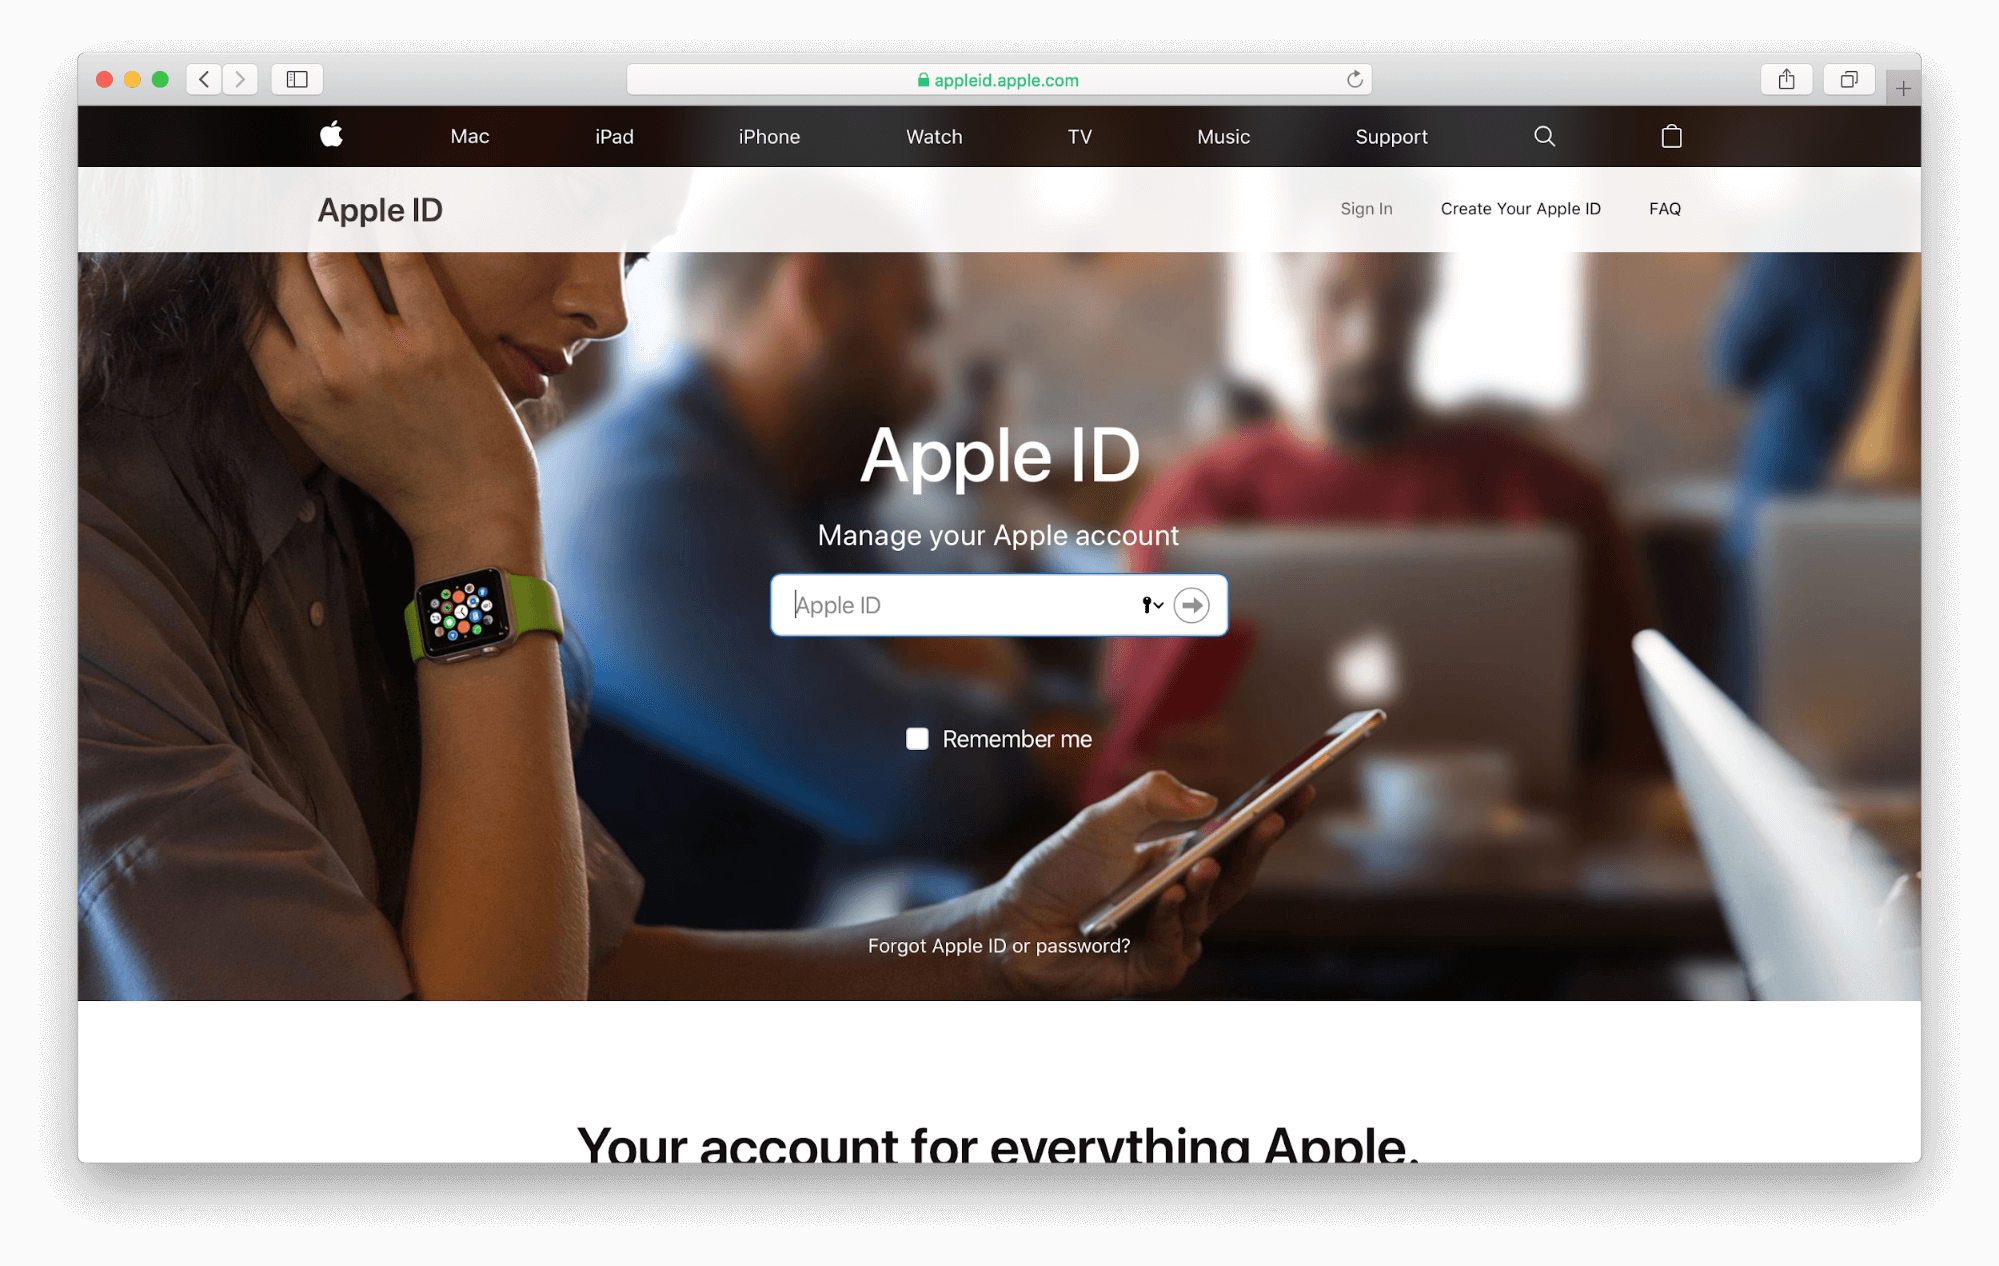 appleid.apple